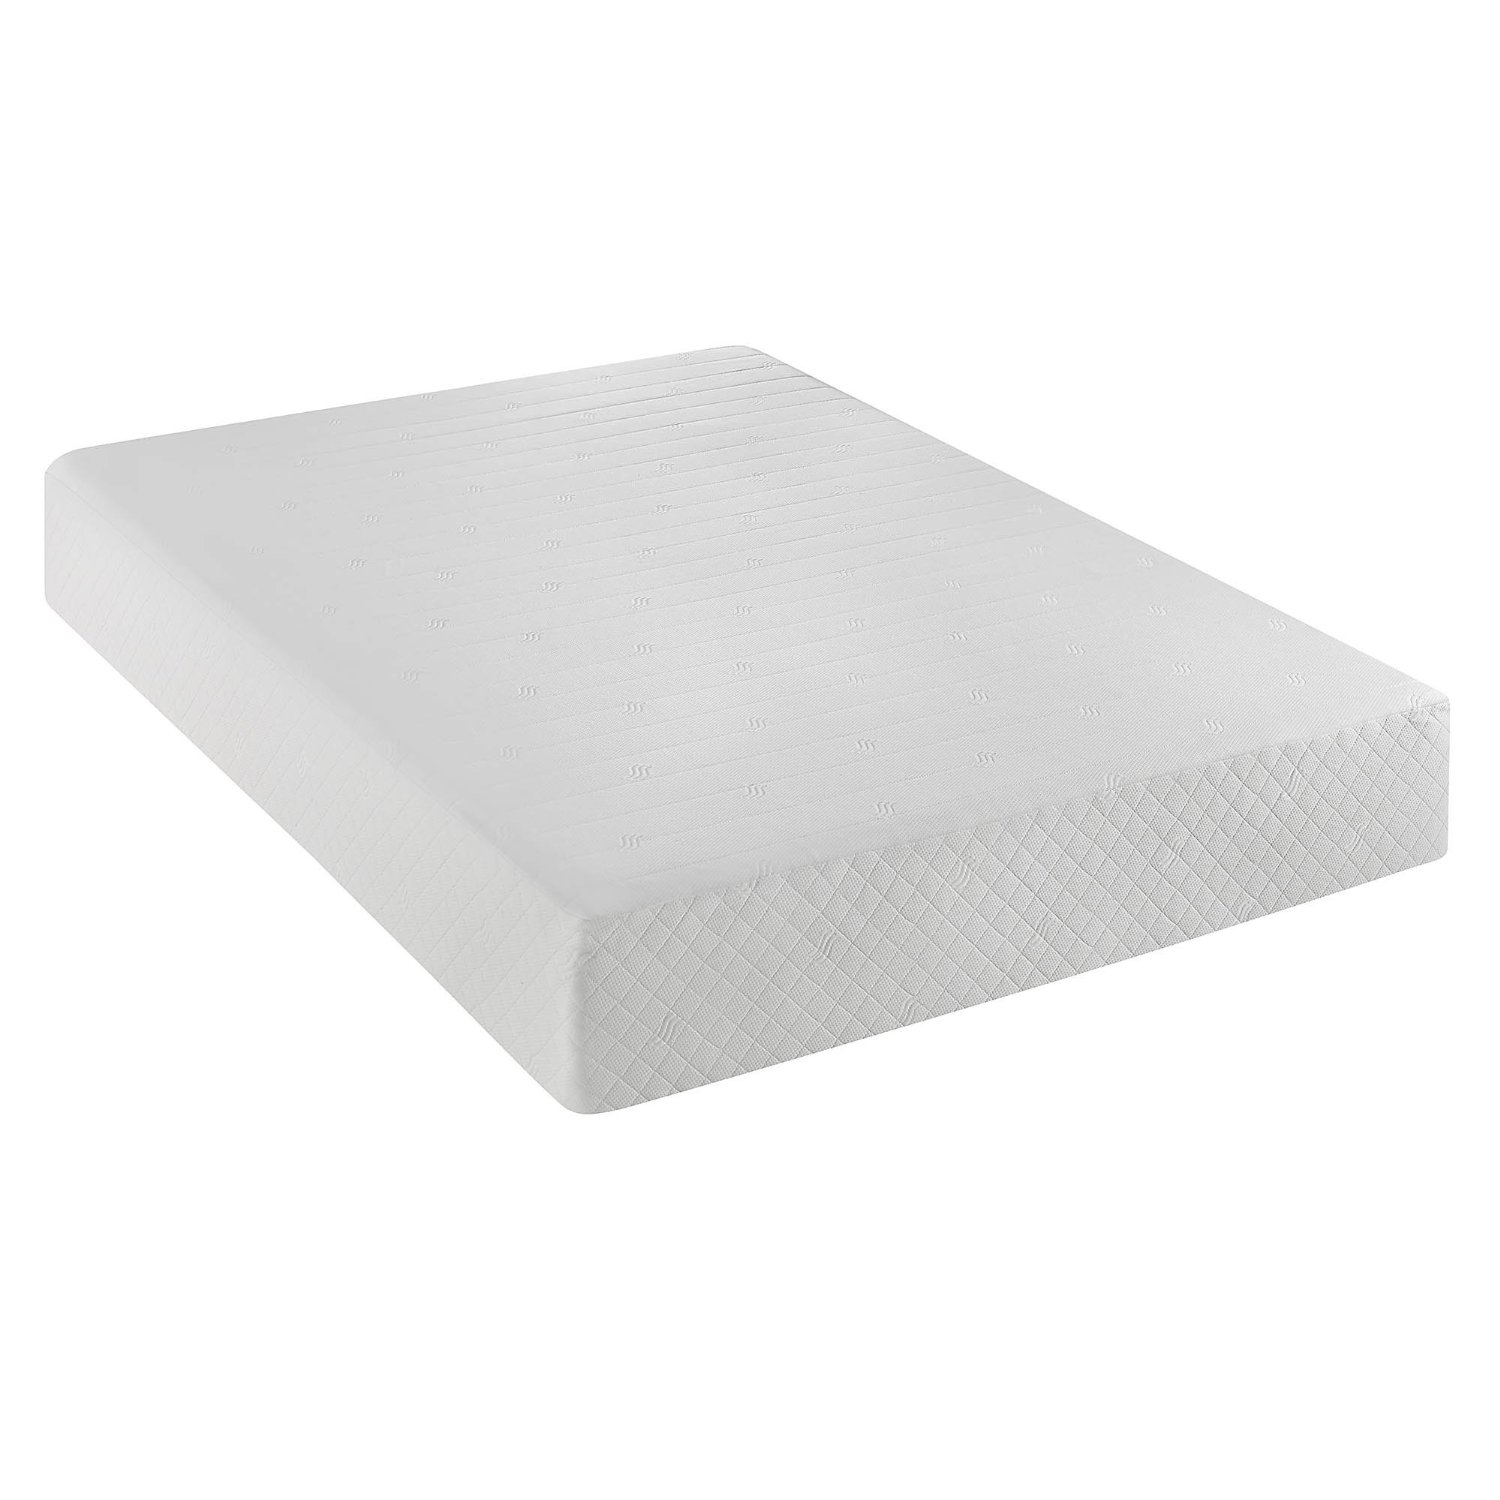 Top 10 Best Serta Mattress Reviews — Which One Is for You? (2020)